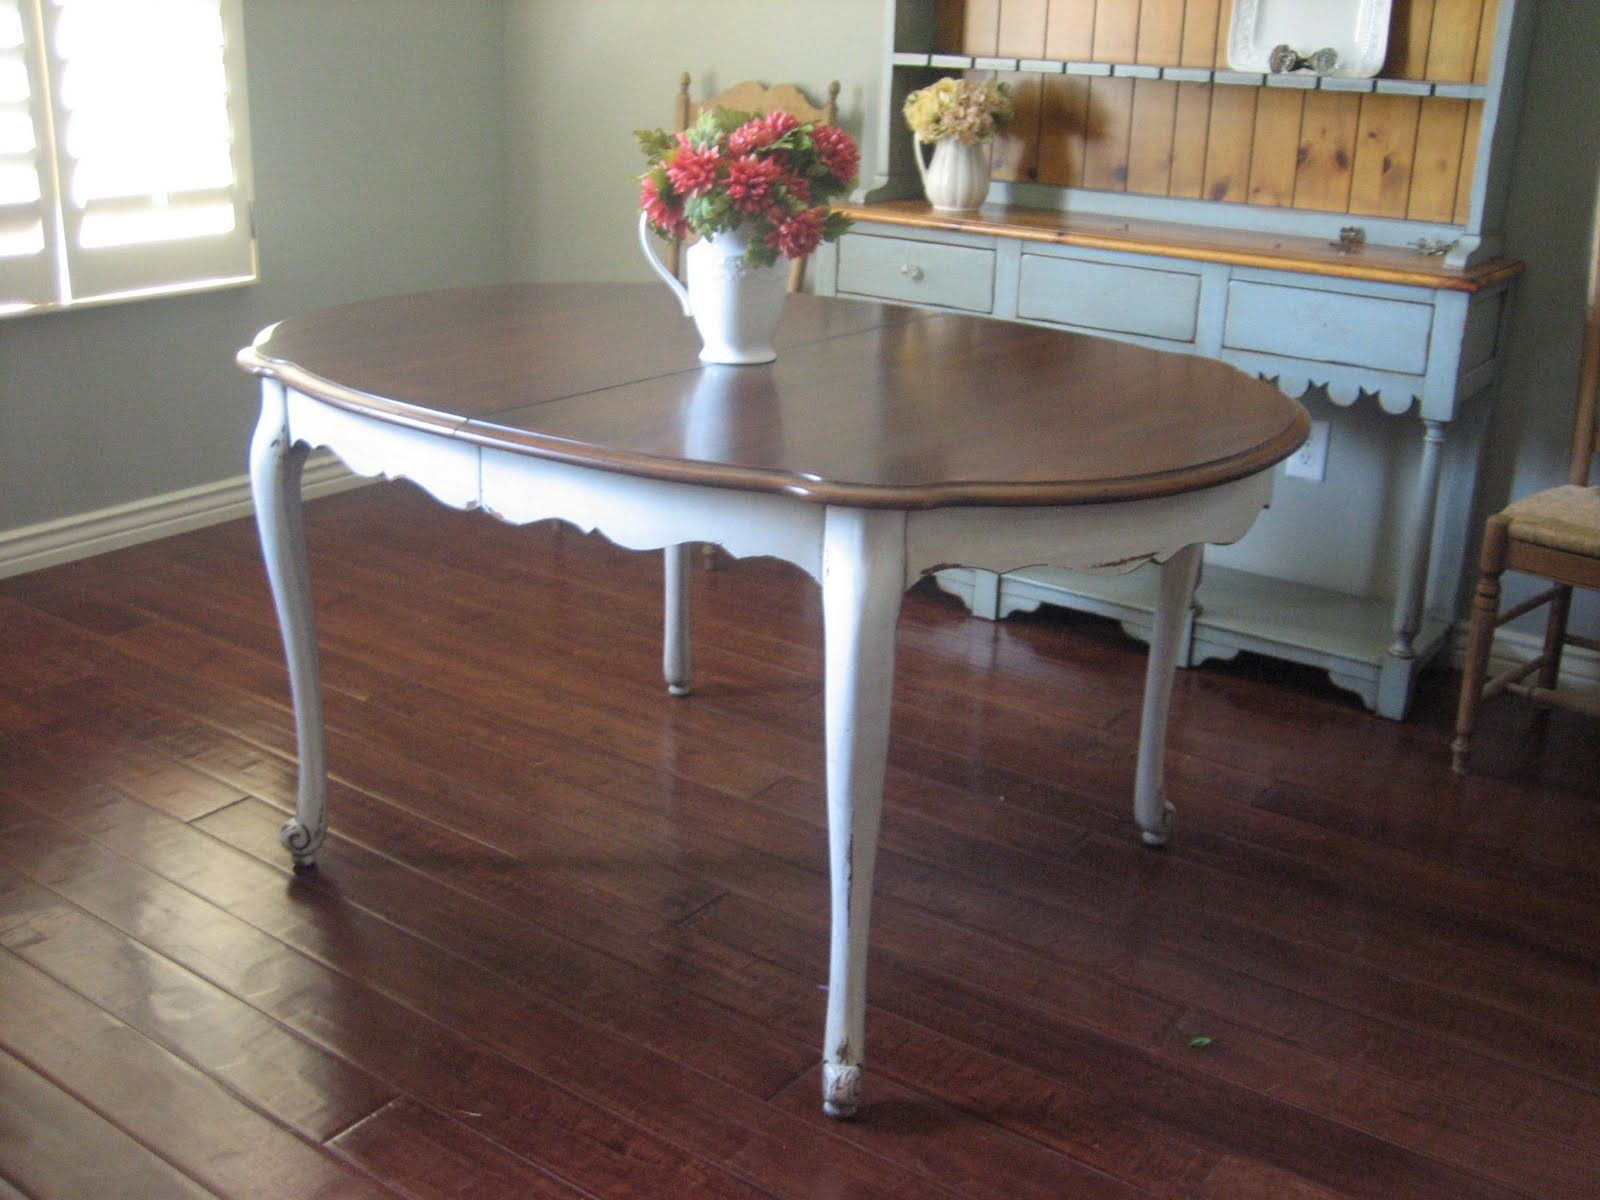 Distressed White Kitchen Table Painted White Distressed Kitchen Tables Euro European Paint